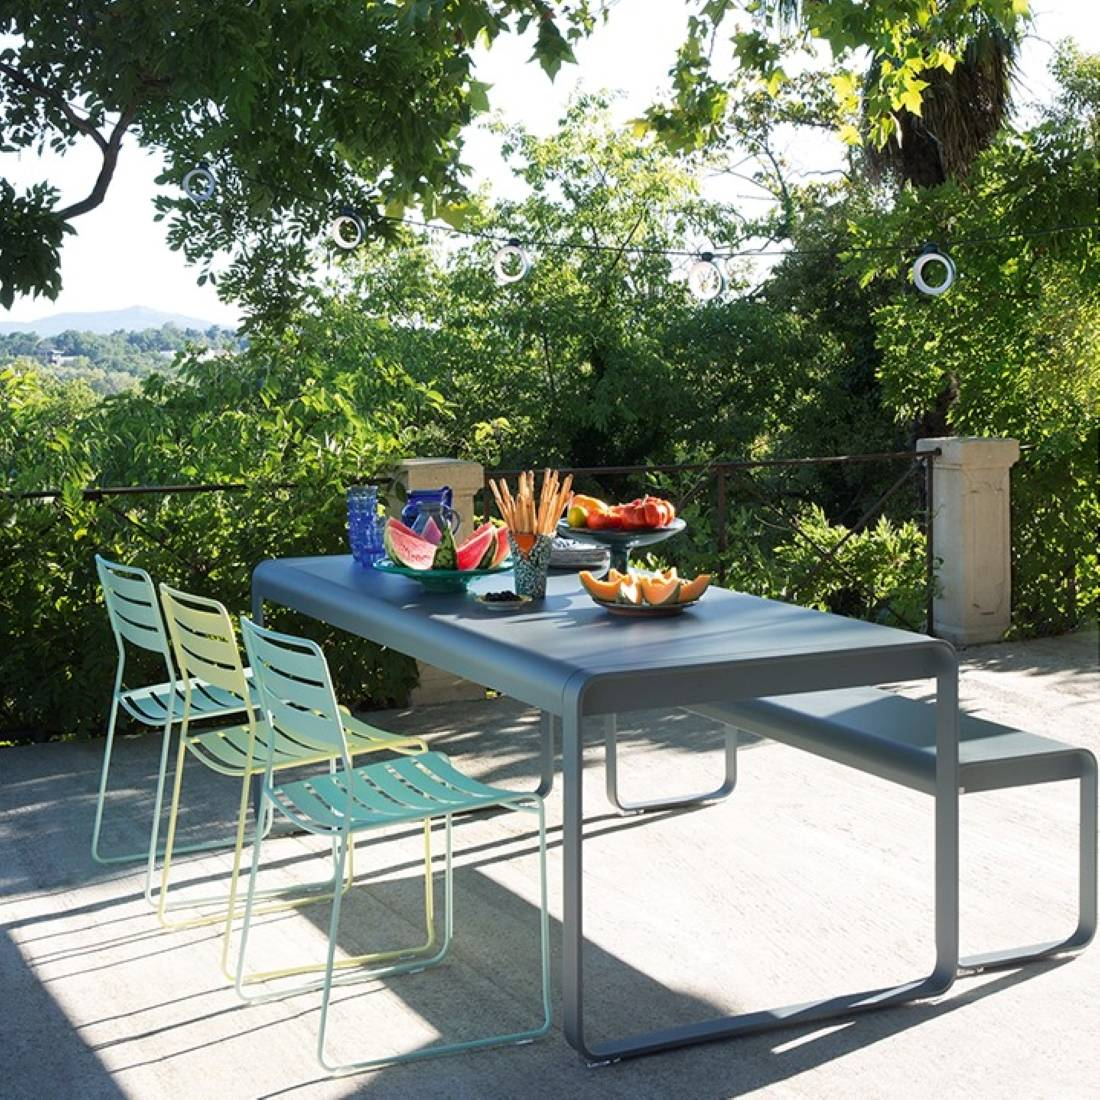 Contemporary Garden Furniture Uk modren contemporary garden furniture uk stacking chair dining and